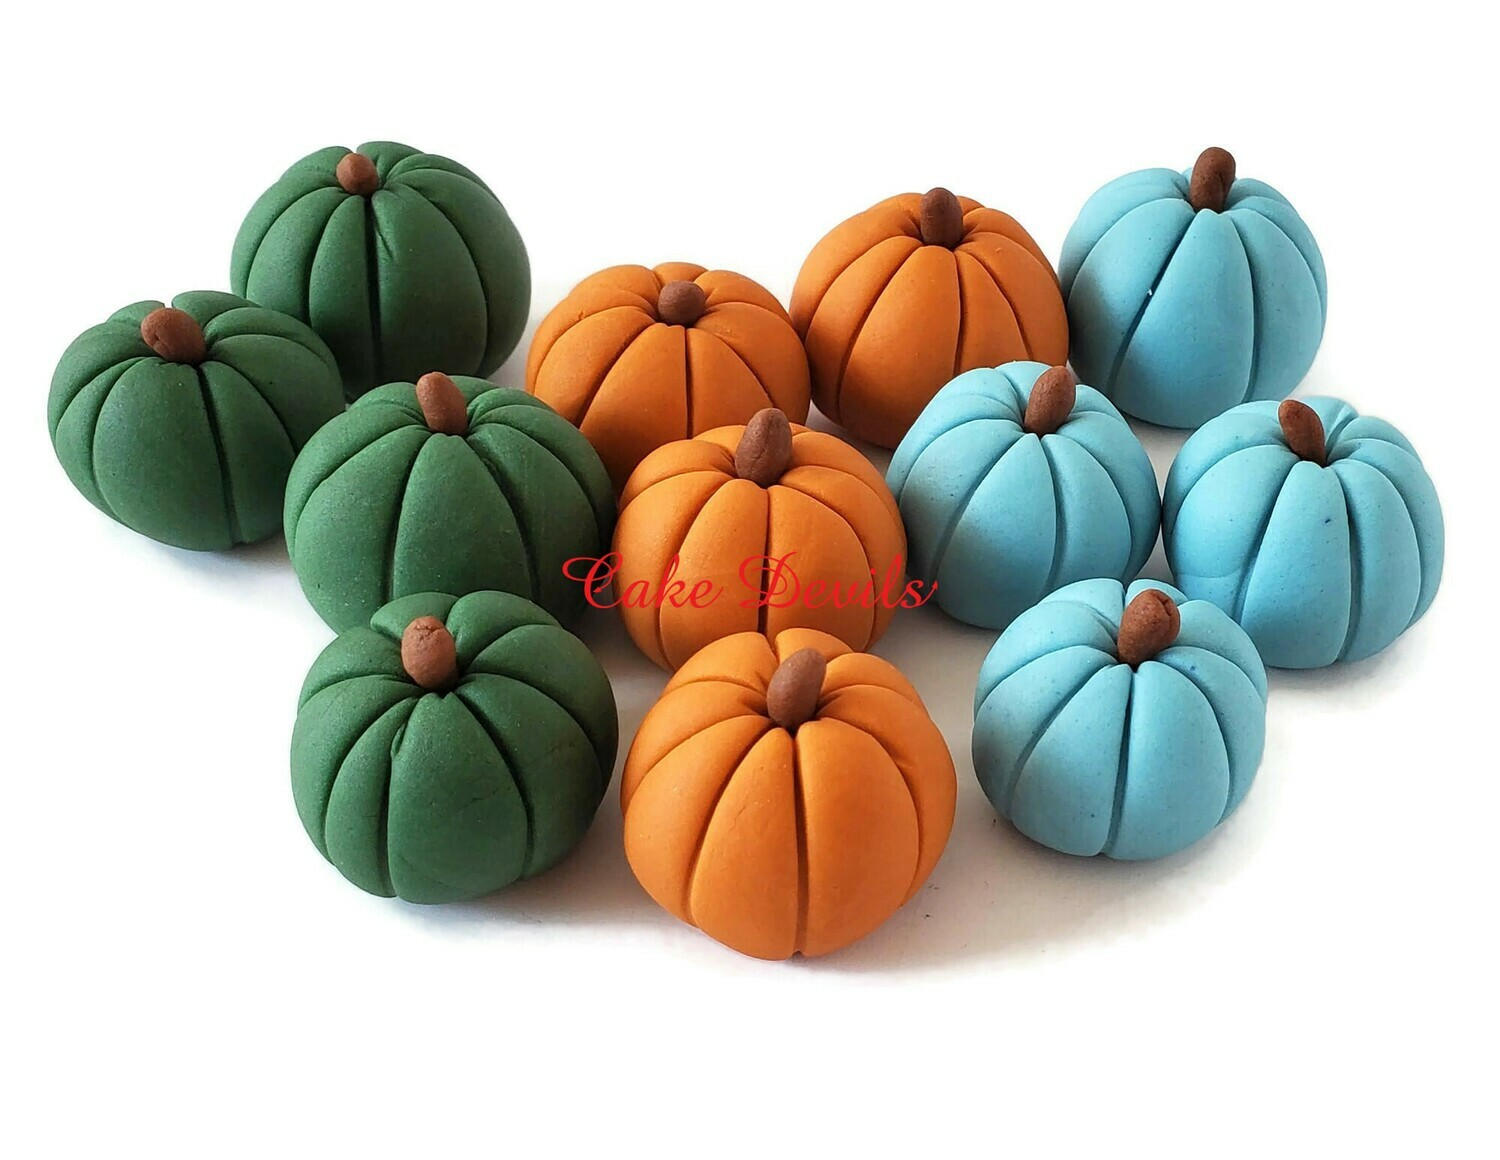 Fall Wedding Pumpkin Cake Decorations, Fondant Pumpkins, Autumn Wedding, Edible pumpkins, colored pumpkins, elegant pumpkins